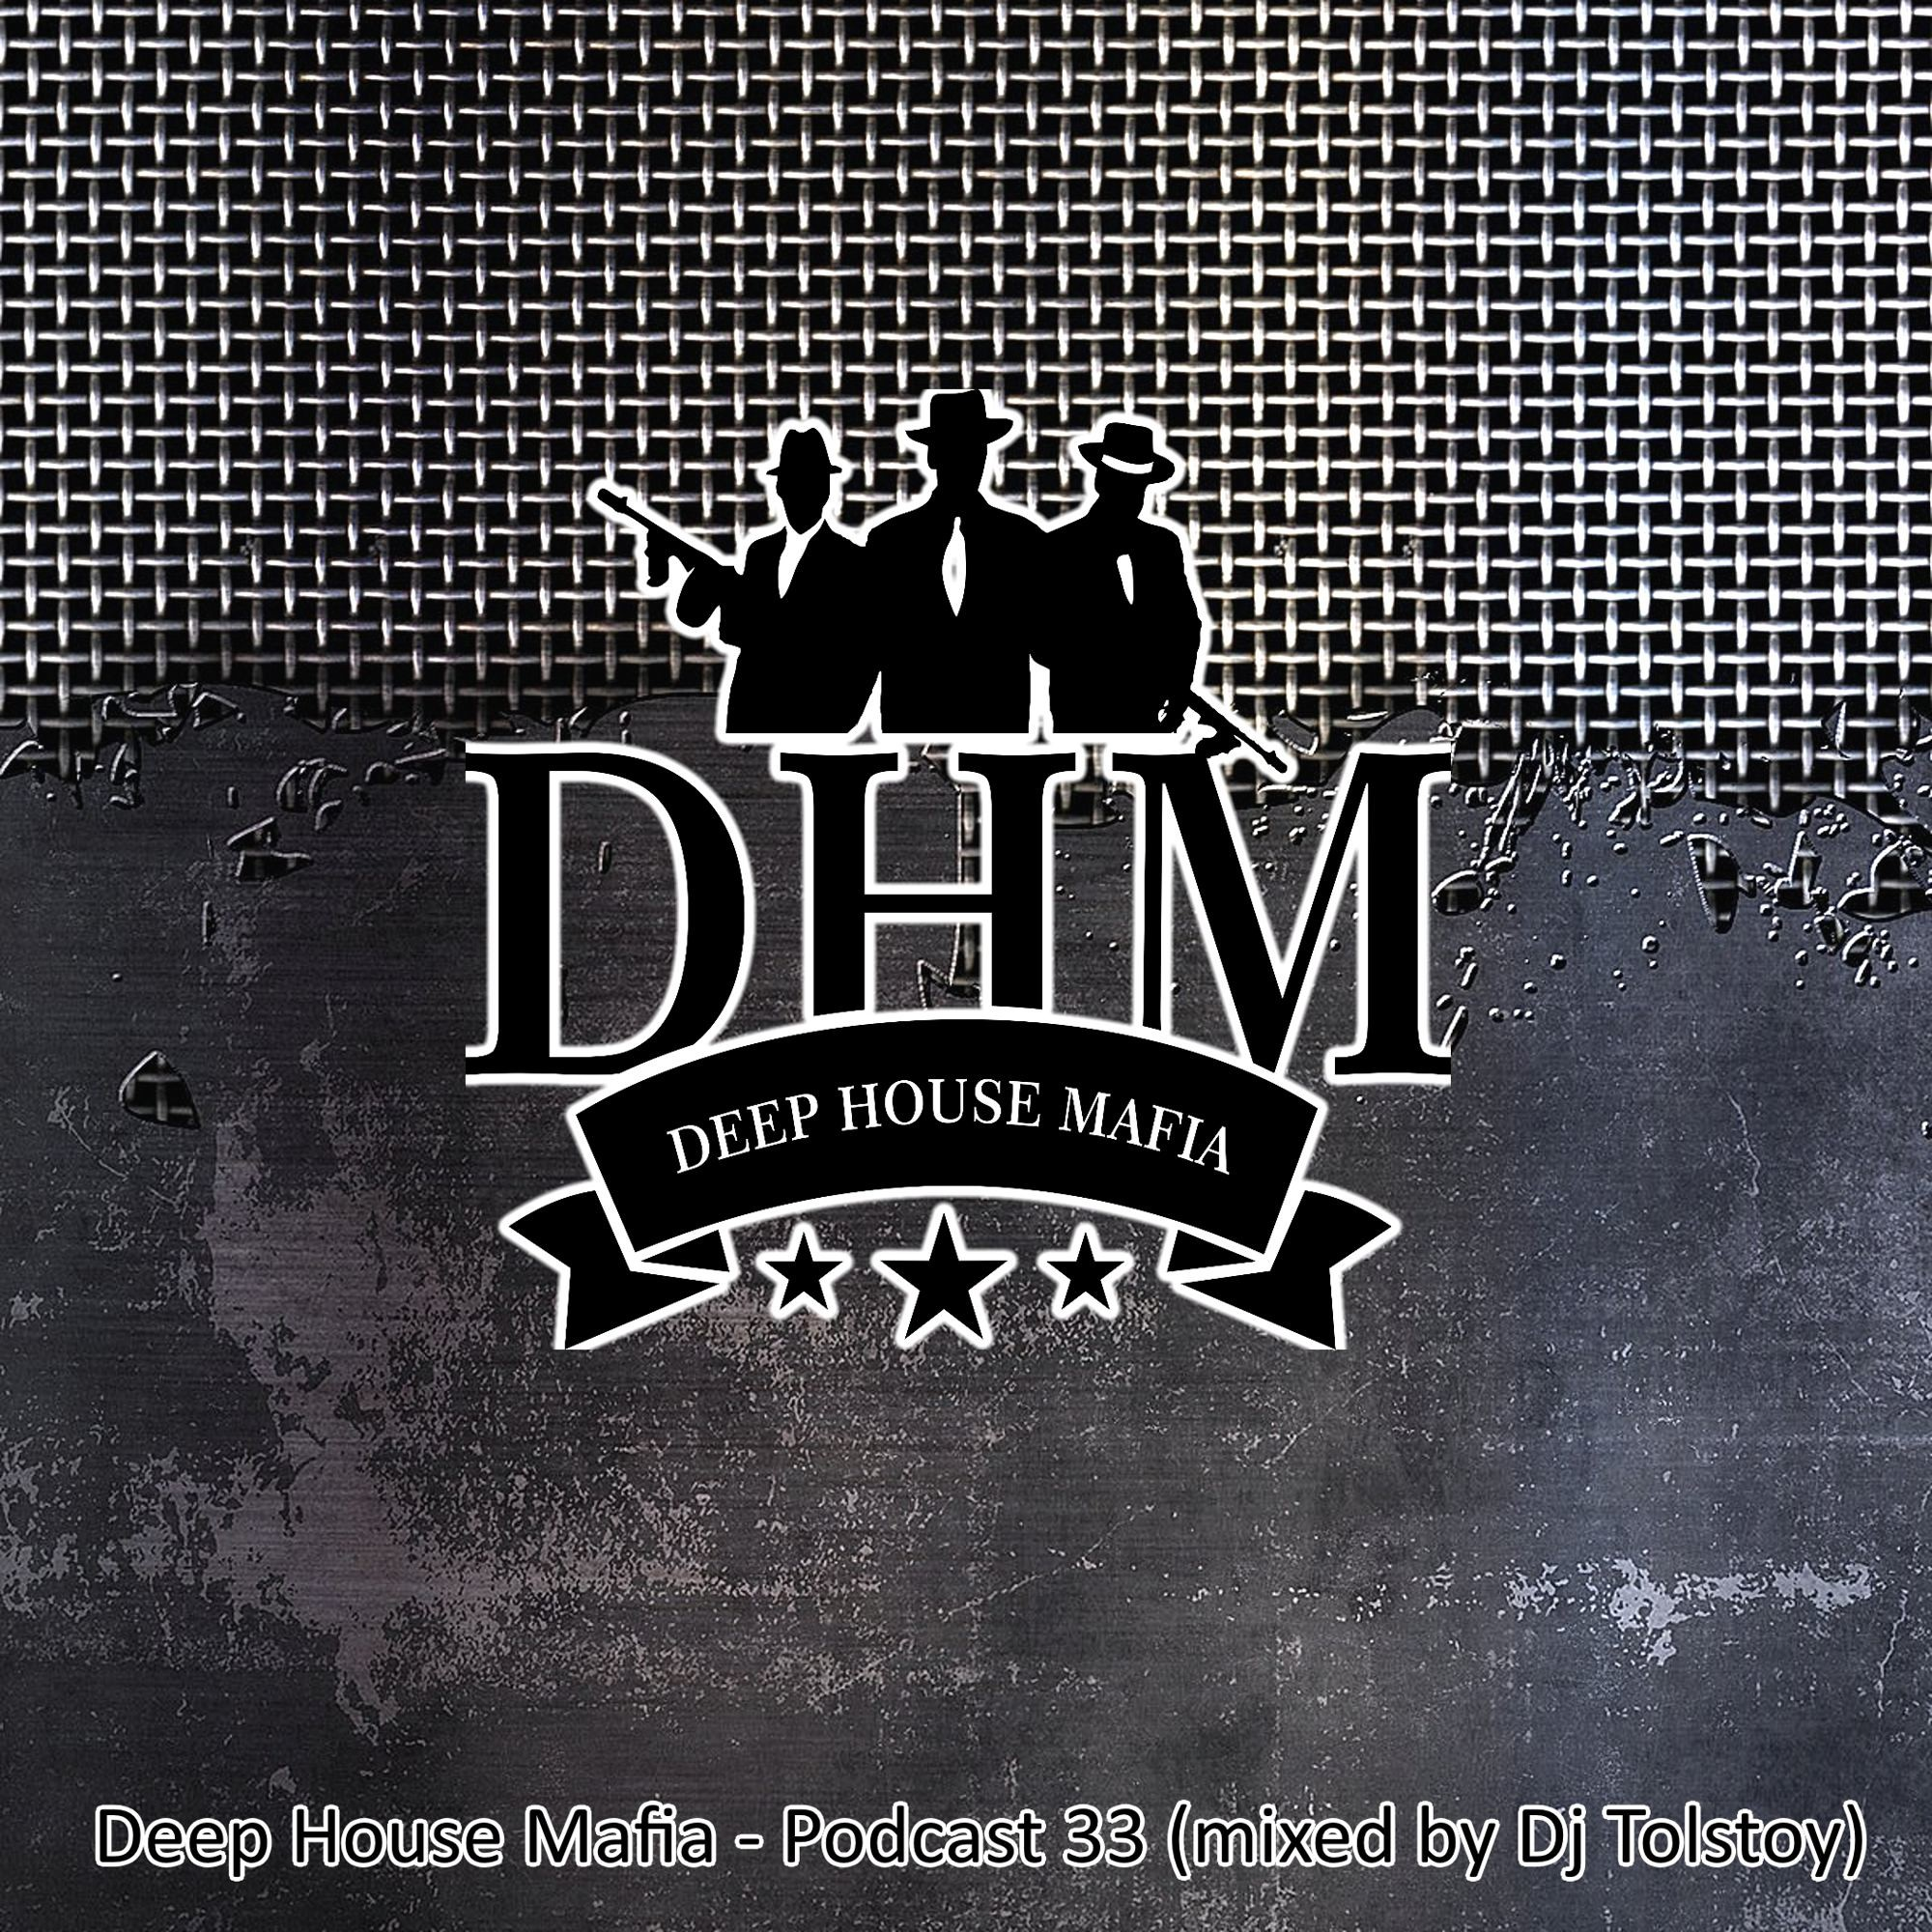 Deep house mafia podcast 33 mixed by dj tolstoy for Deep house 2000